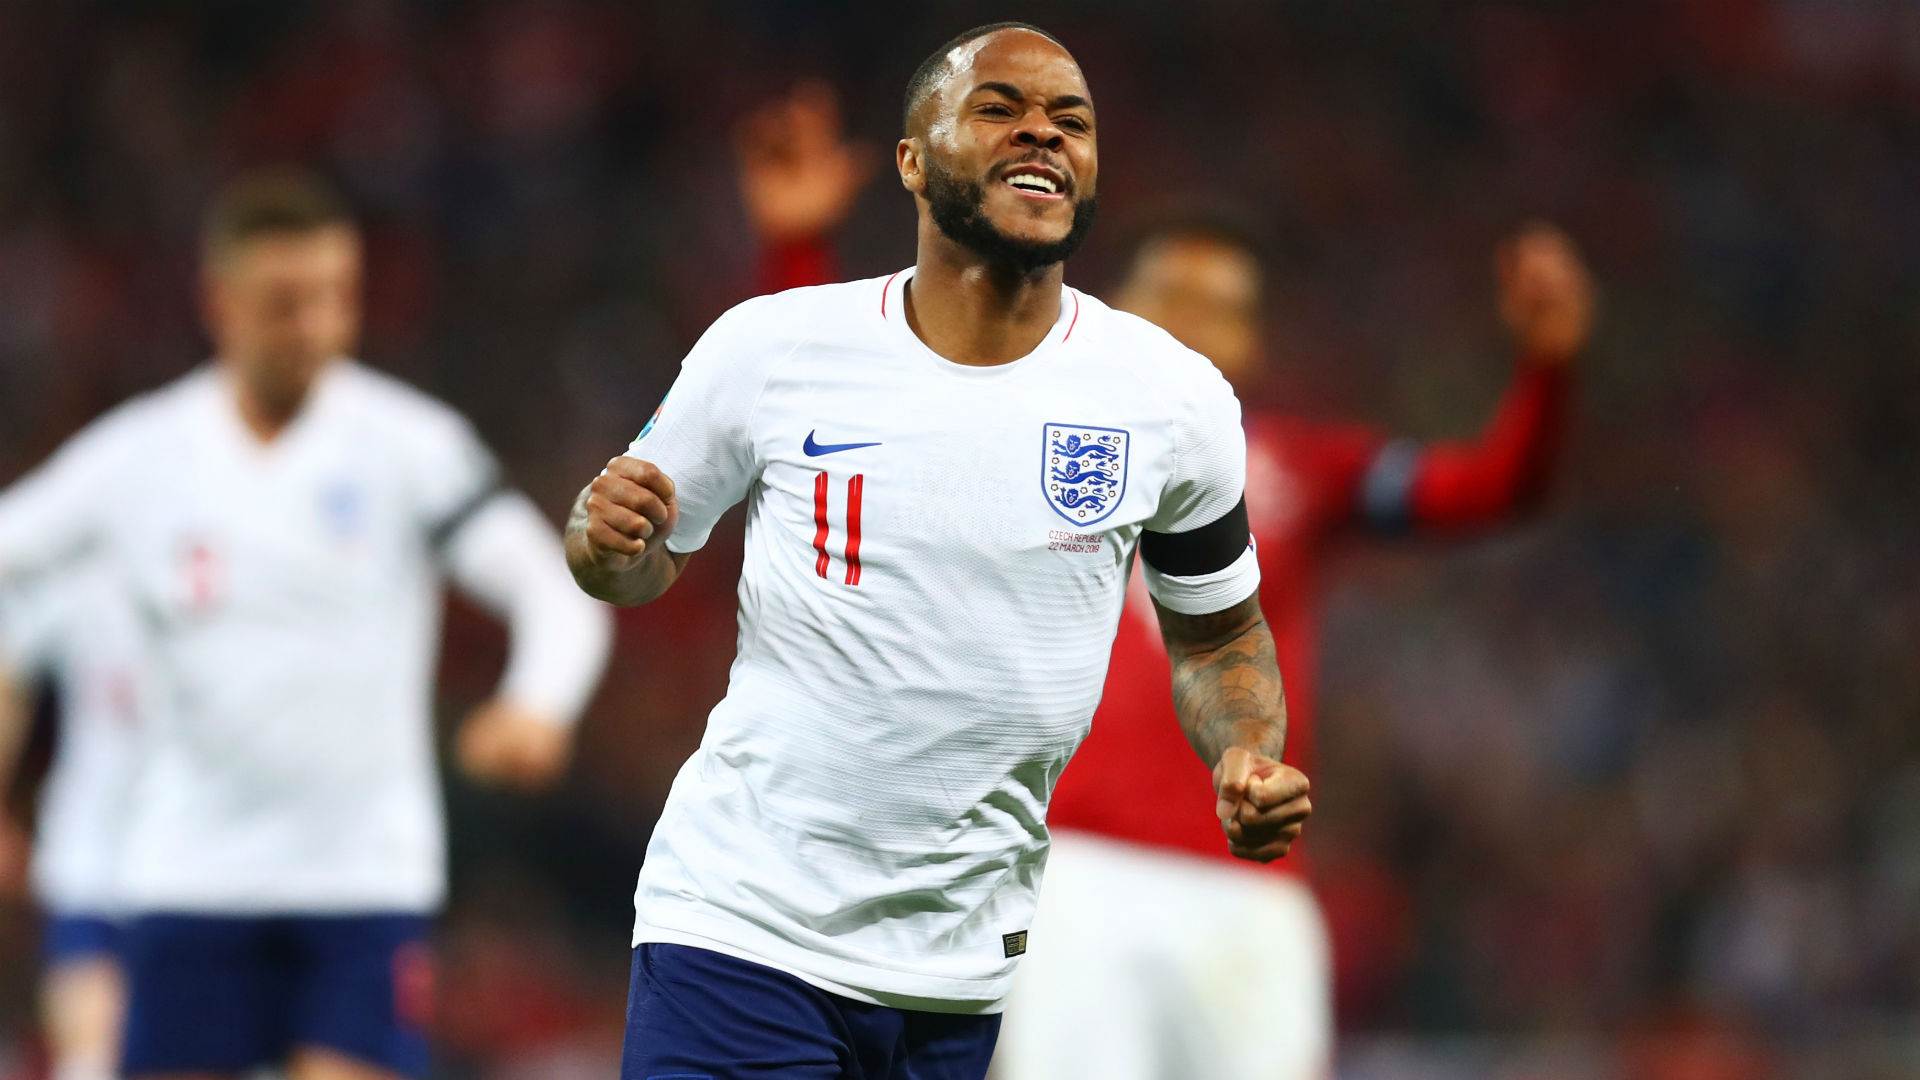 England 5 Czech Republic 0: Sterling hat-trick gives Three Lions roaring start to Euro 2020 qualifiers